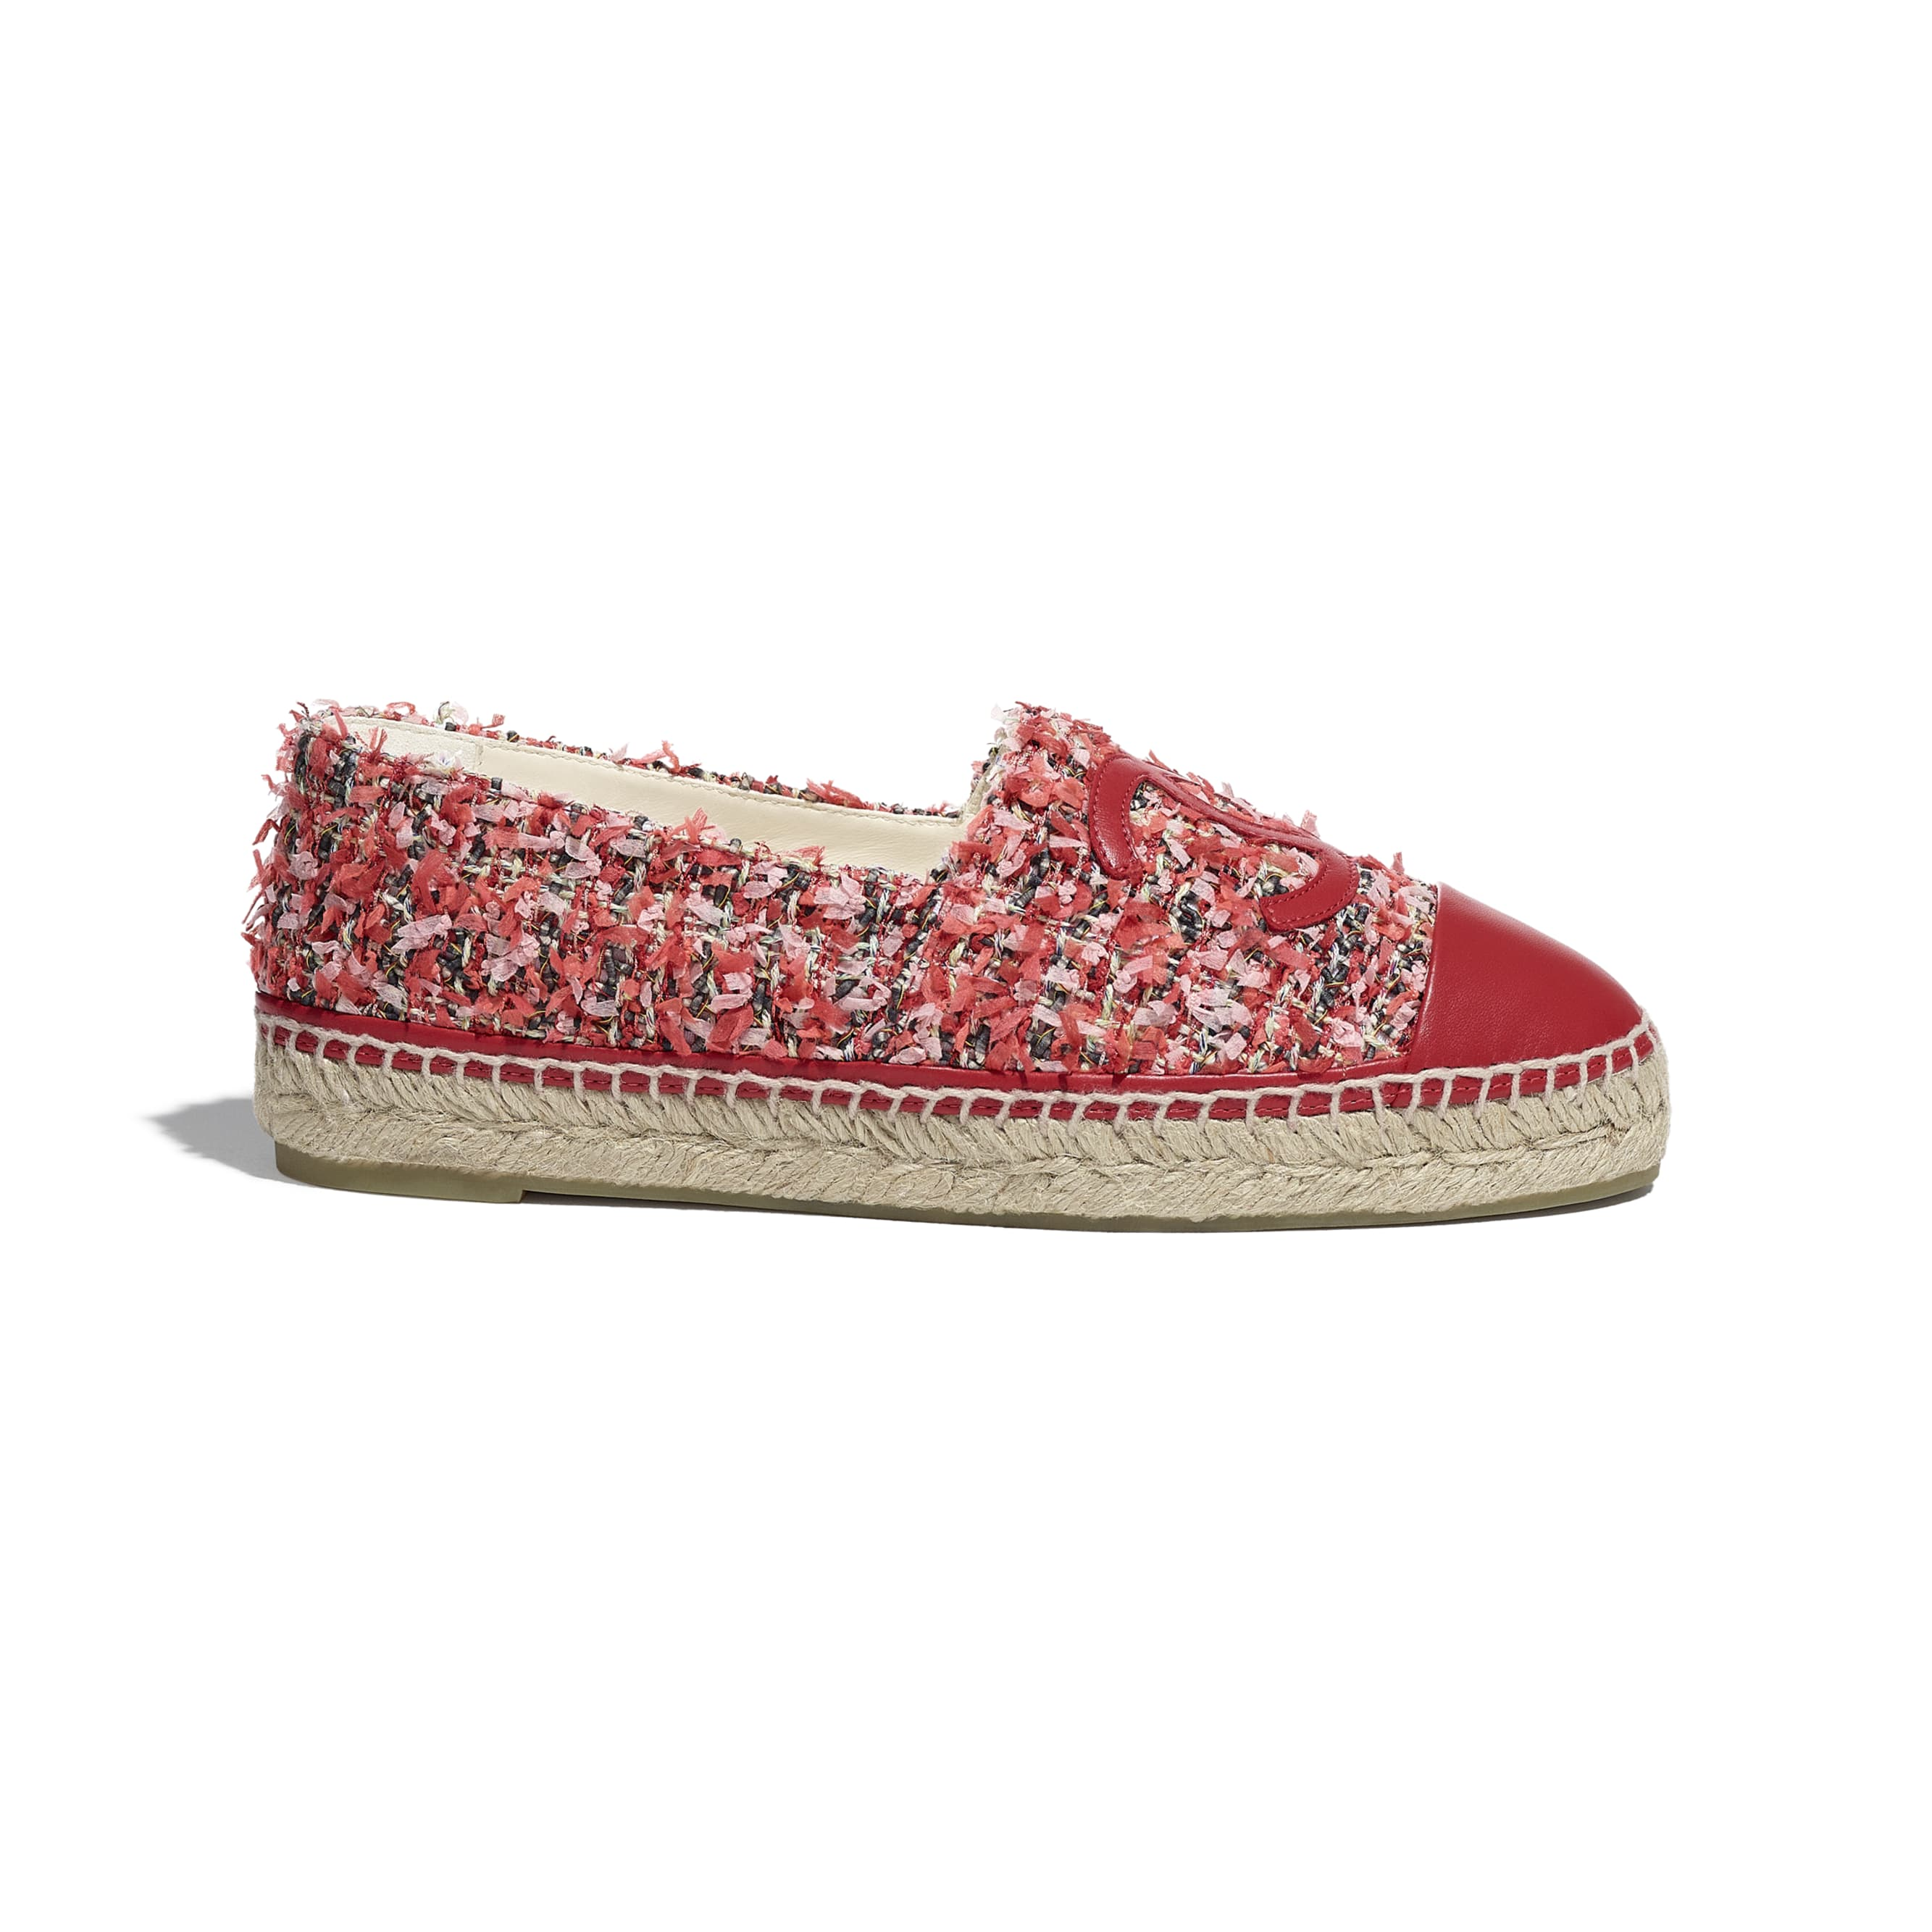 Espadrilles - Coral, Pink, Black & Red - Tweed & Lambskin - CHANEL - Default view - see standard sized version